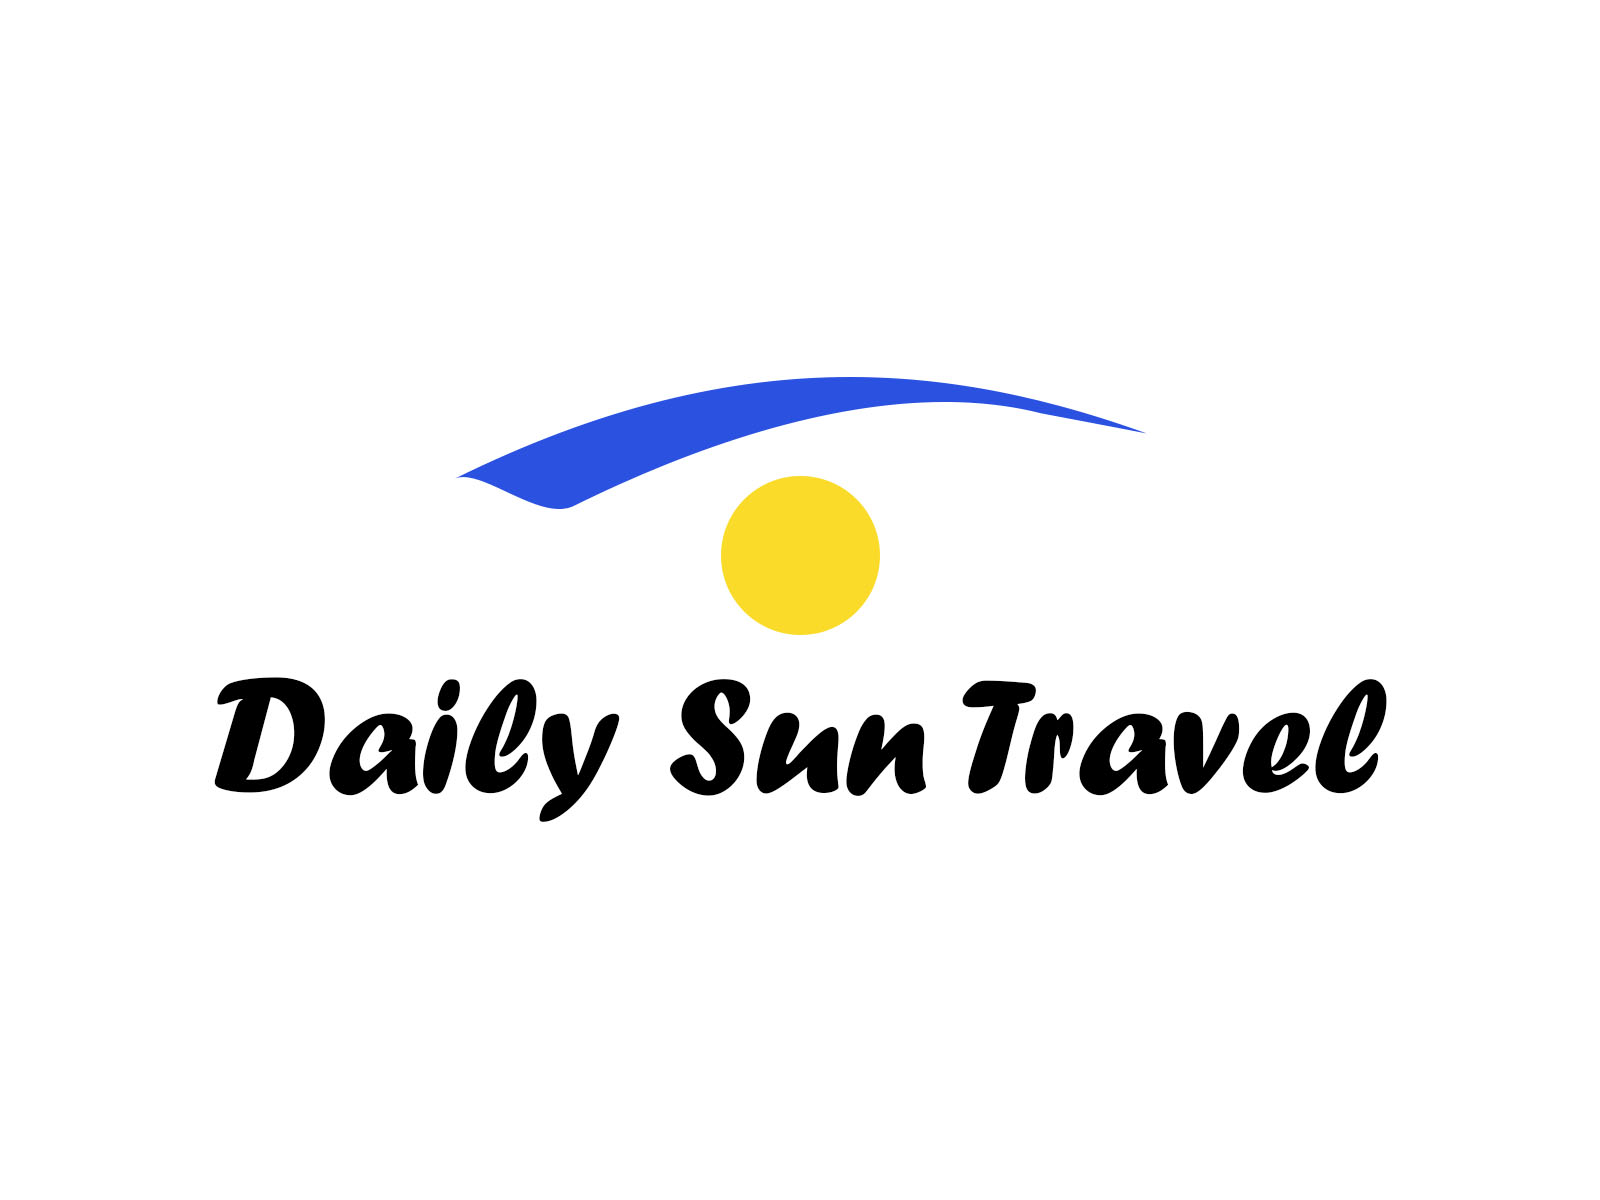 Daily Sun Travel